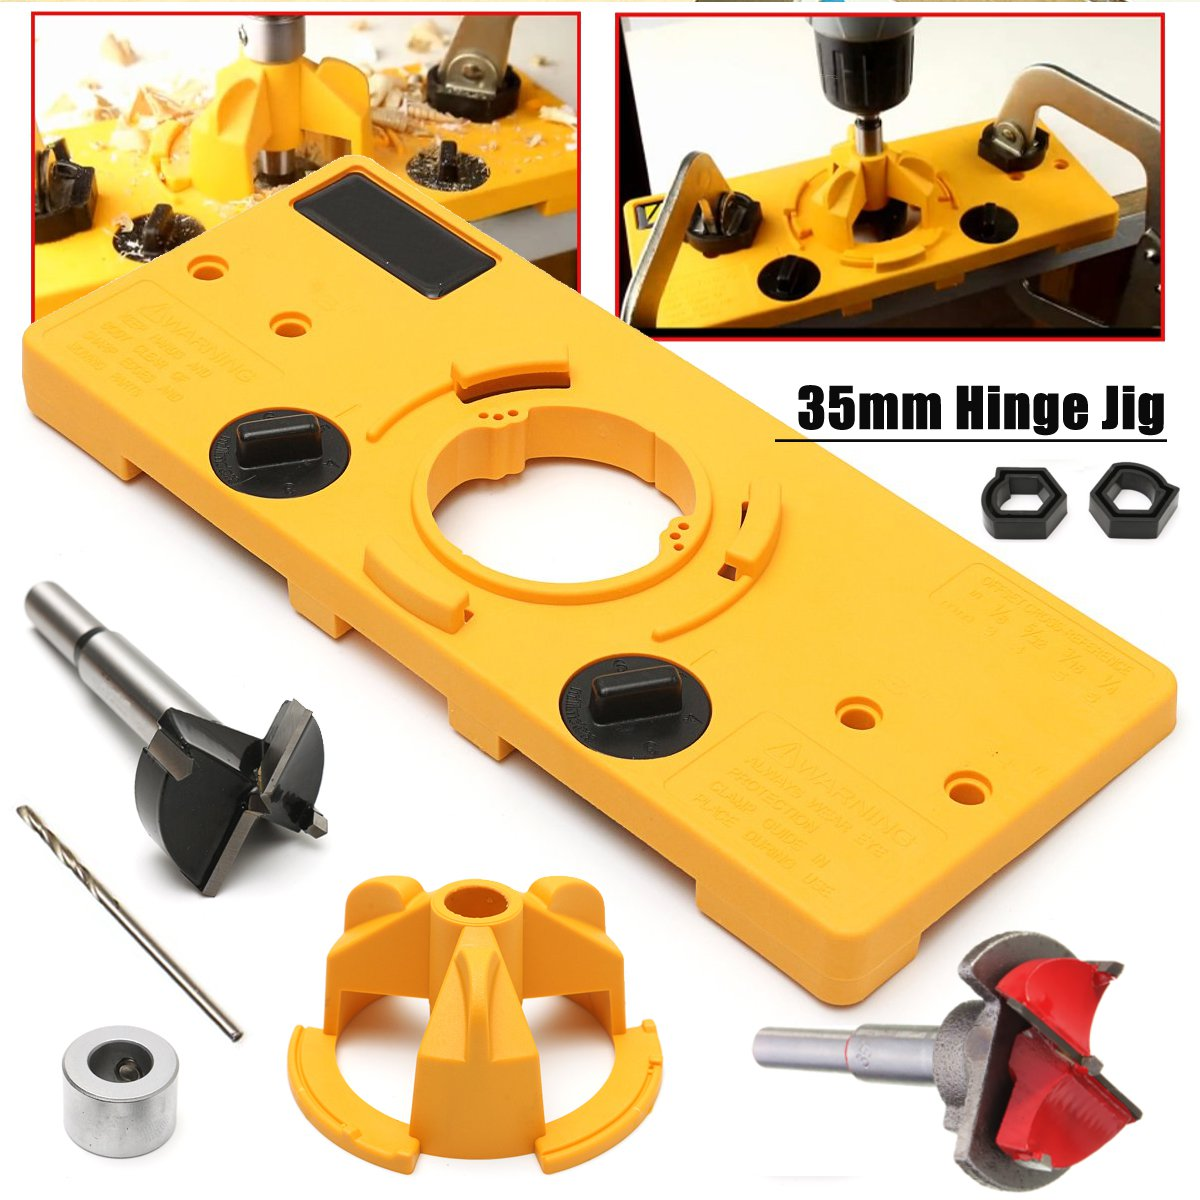 35MM Carbide Tipped Hinge Cutter Boring Drill + 35mm Hinge Drilling Jig + 35mm Forstner Bit woodworking tool drill bits 1pc cemented carbide 35mm hole saw woodworking core drill bit hinge cutter boring forstner bit tipped drilling tool high quality